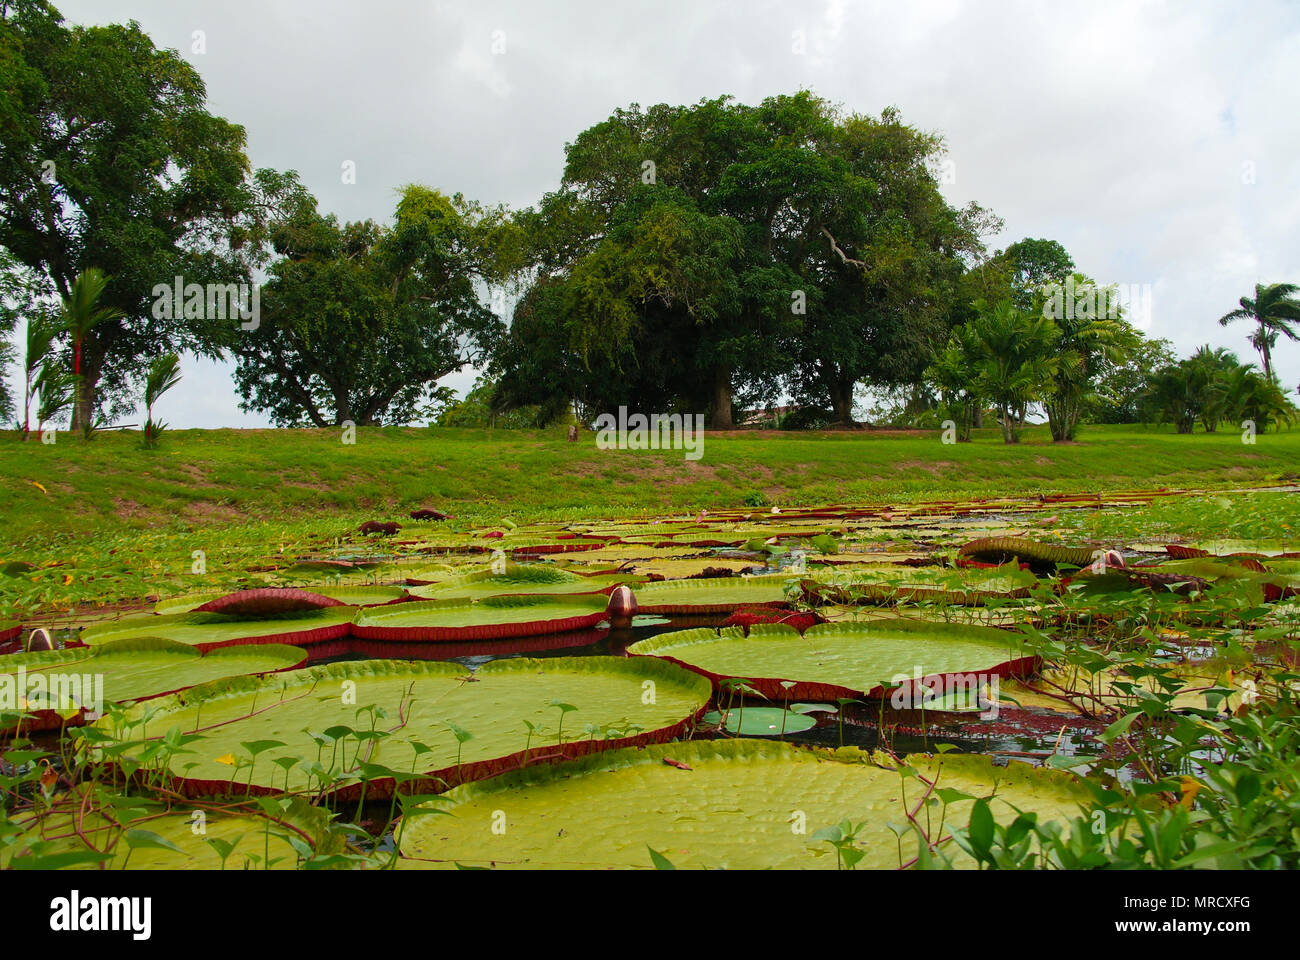 Lotus pond around gunpowder storage in Fort Nieuw Amsterdam at Marienburg, Suriname - Stock Image